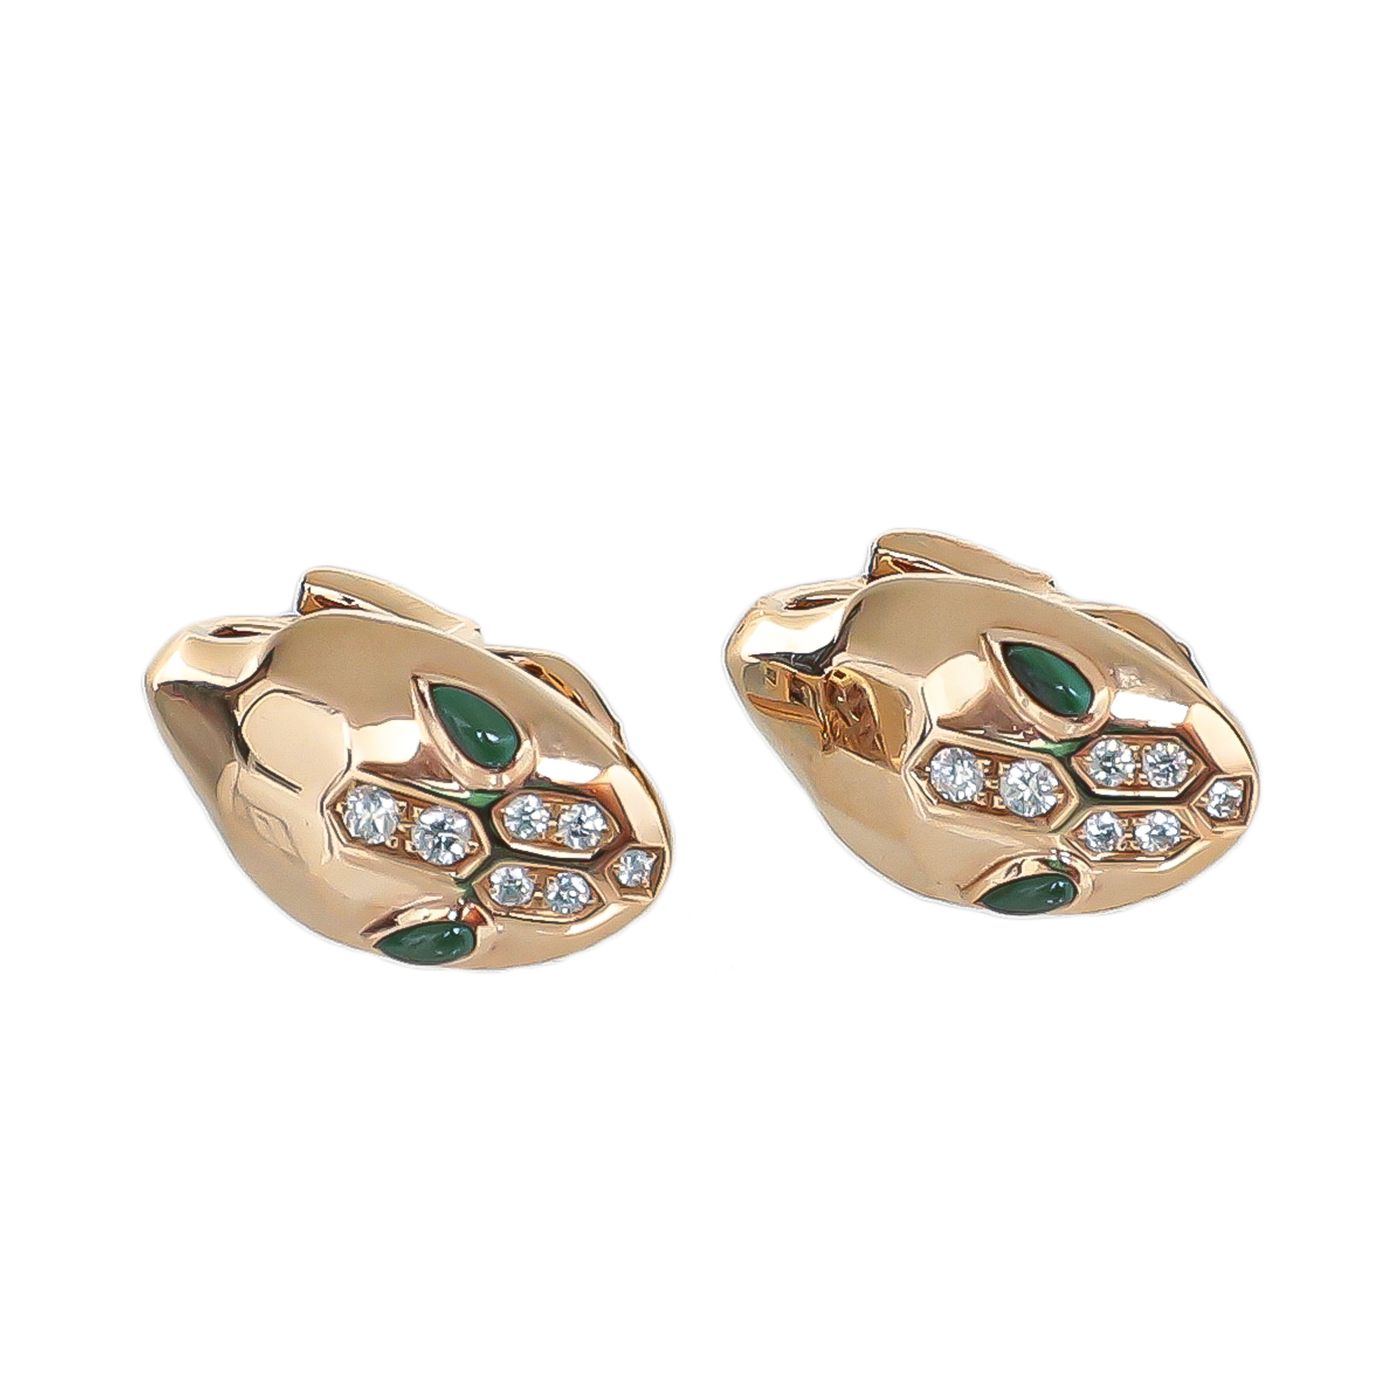 Bvlgari 18K Pink Gold serpenti W/ Malachite Demi Pave Daimonds Earrings